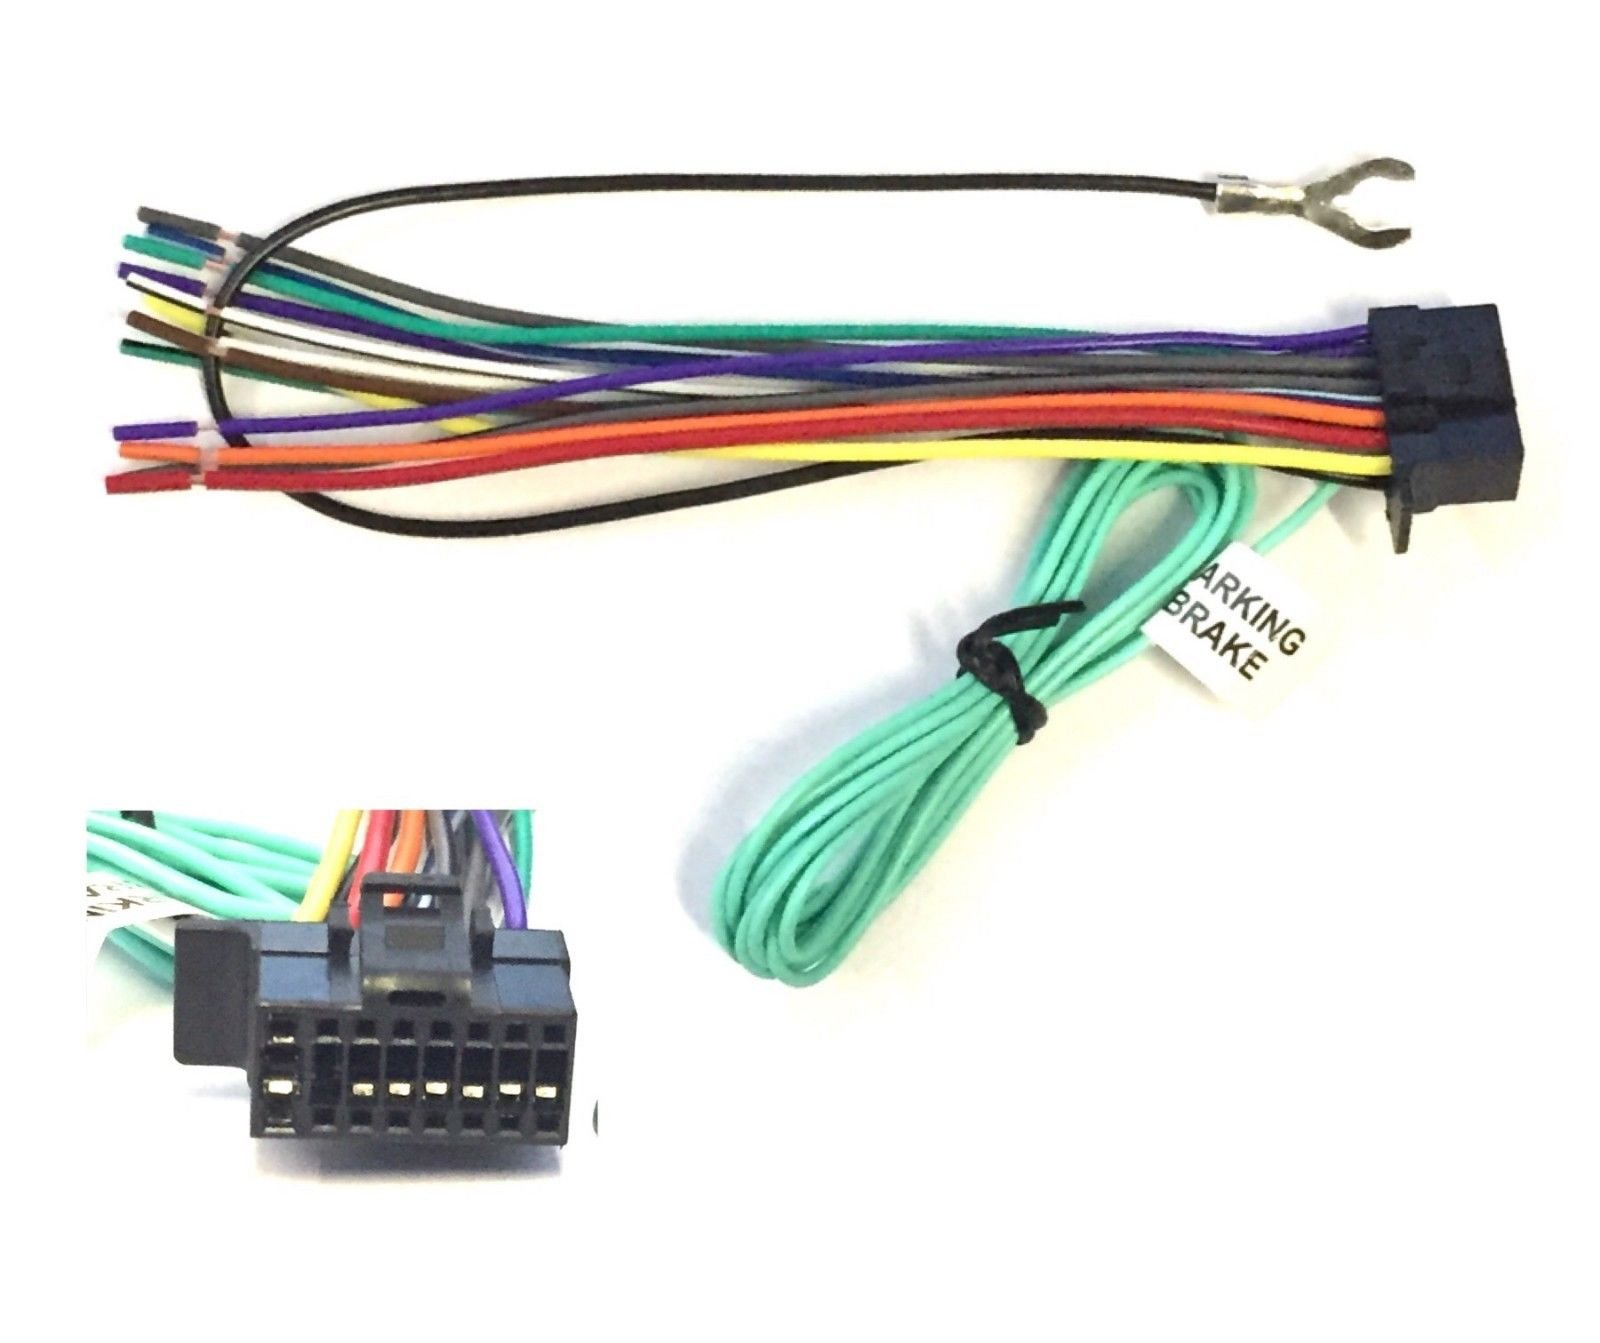 hight resolution of asc car stereo power speaker wire harness plug for sony xplod es 16 pin